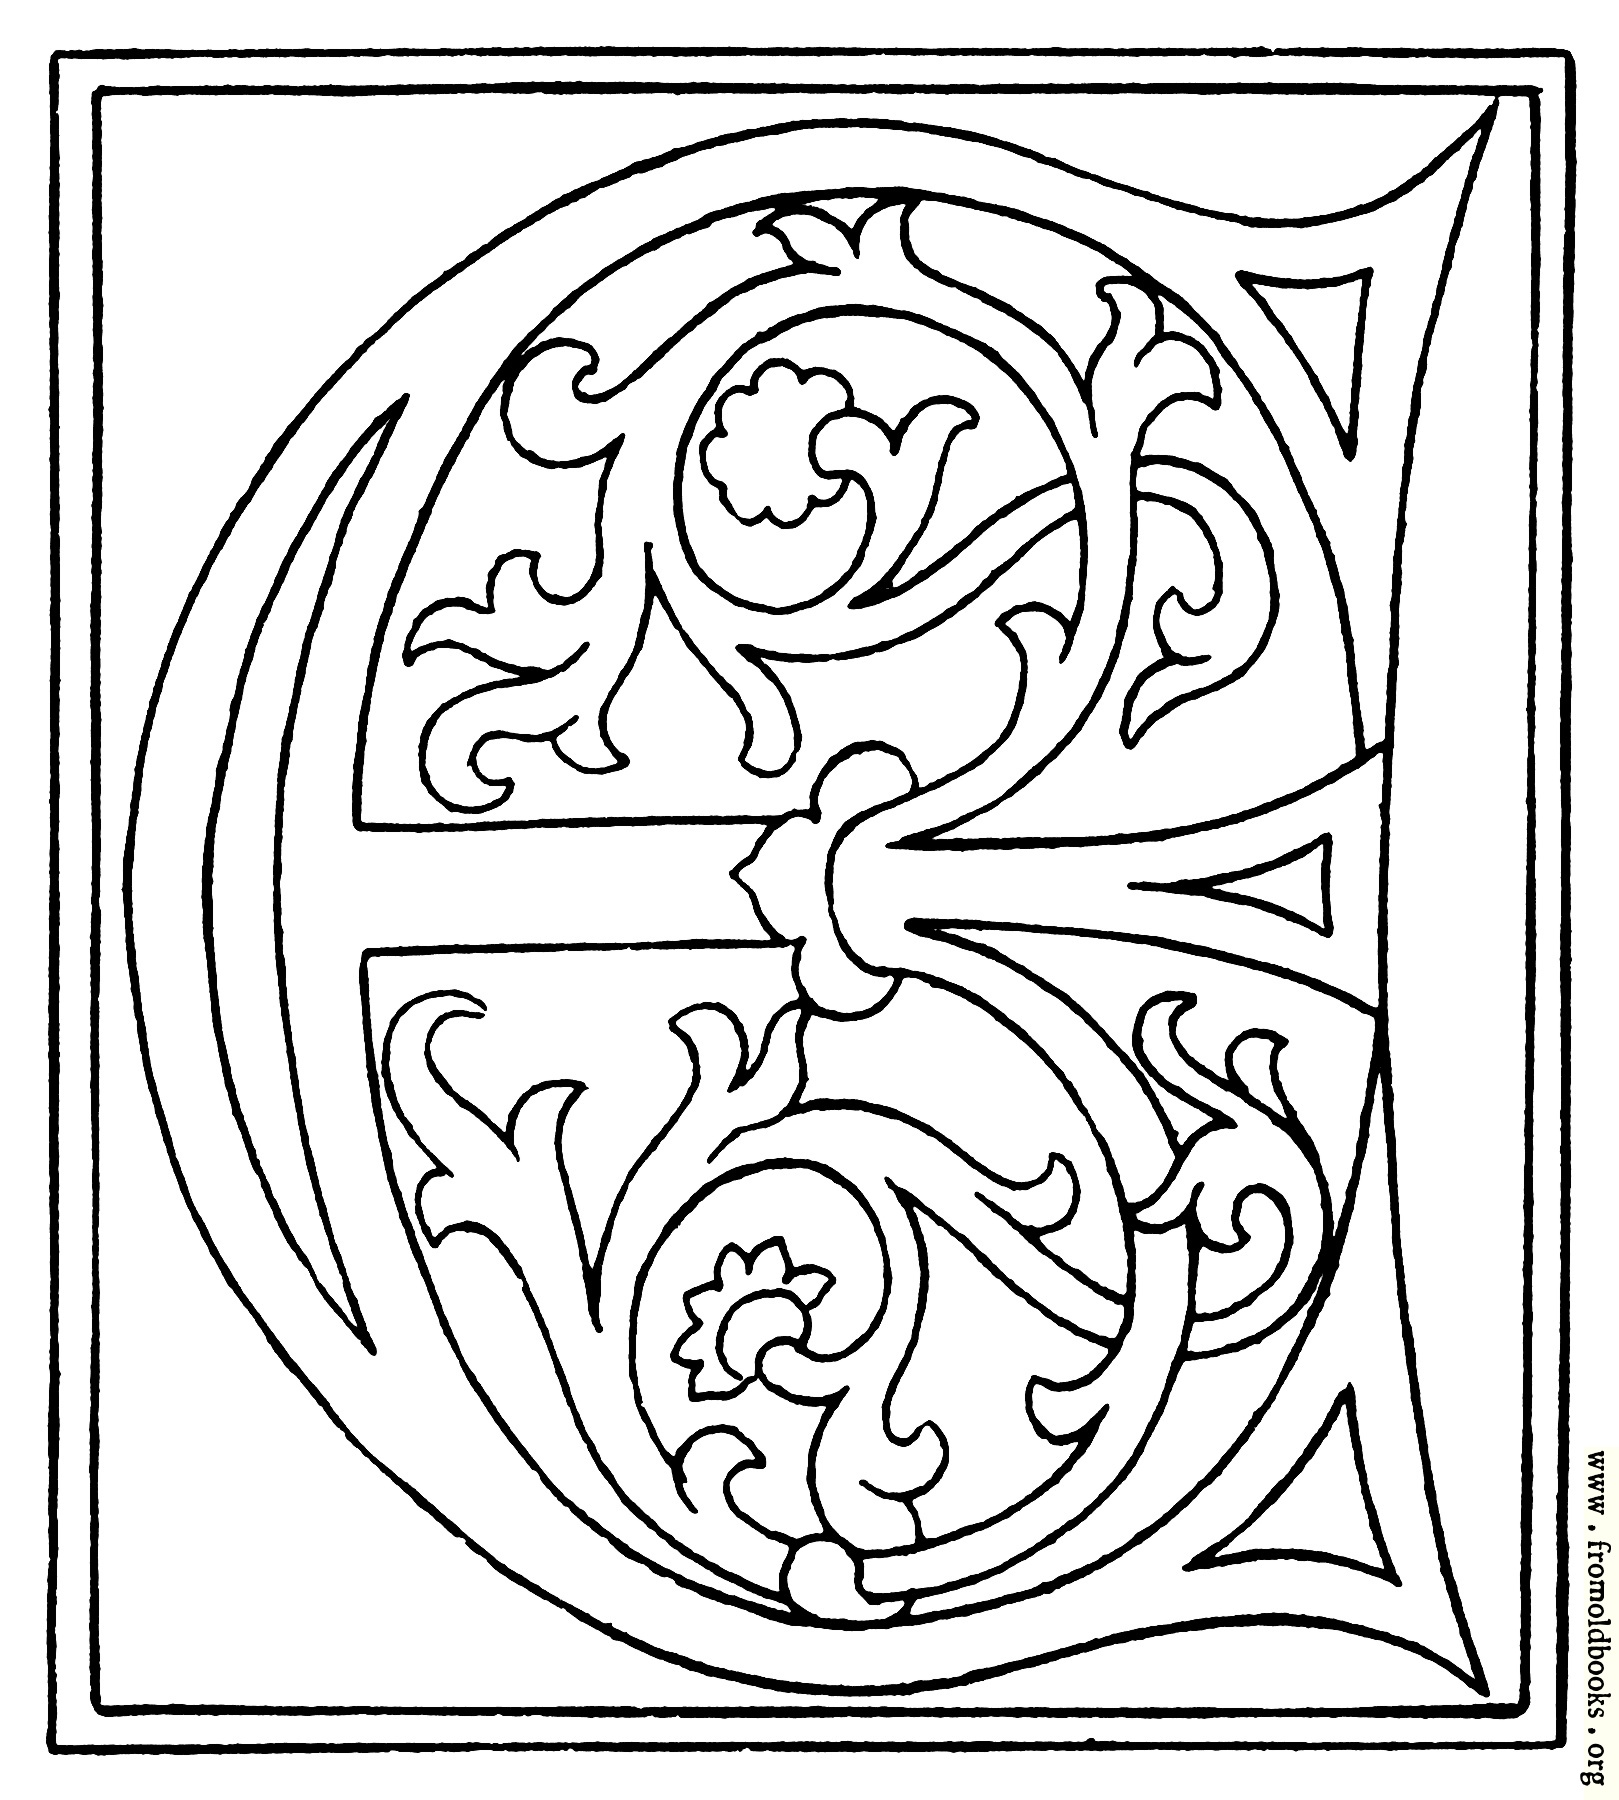 [Picture: clipart: initial letter E from late 15th century printed book]